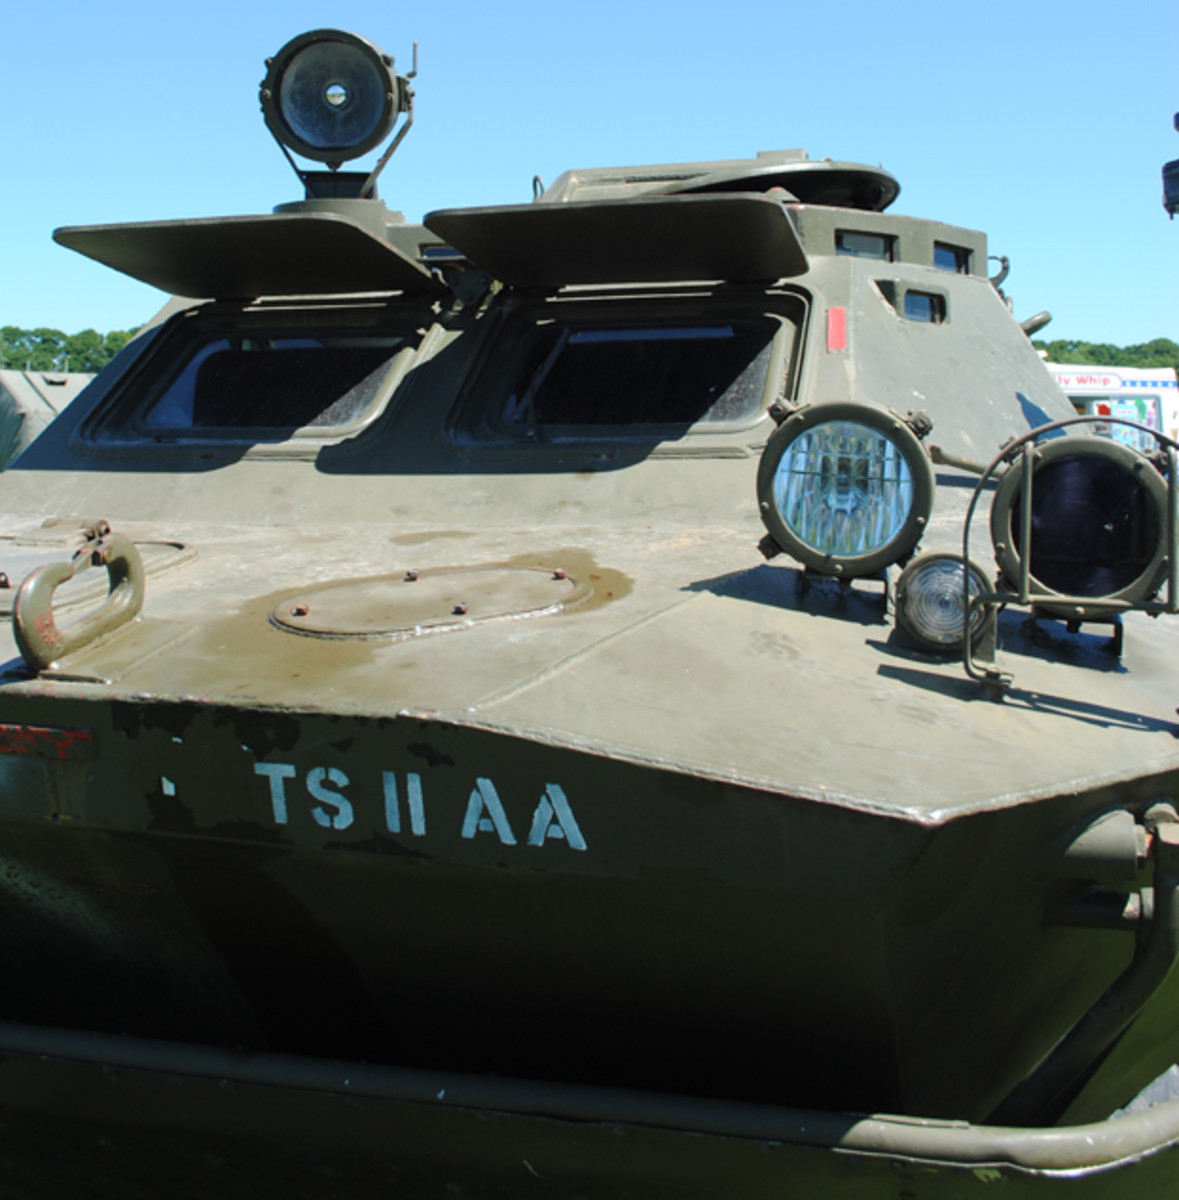 The welded hull allowed good angles to be achieved in the design to improve ballistic protection. The BRDM-2 also had a low silhouette to permit camouflage and concealment using natural cover.